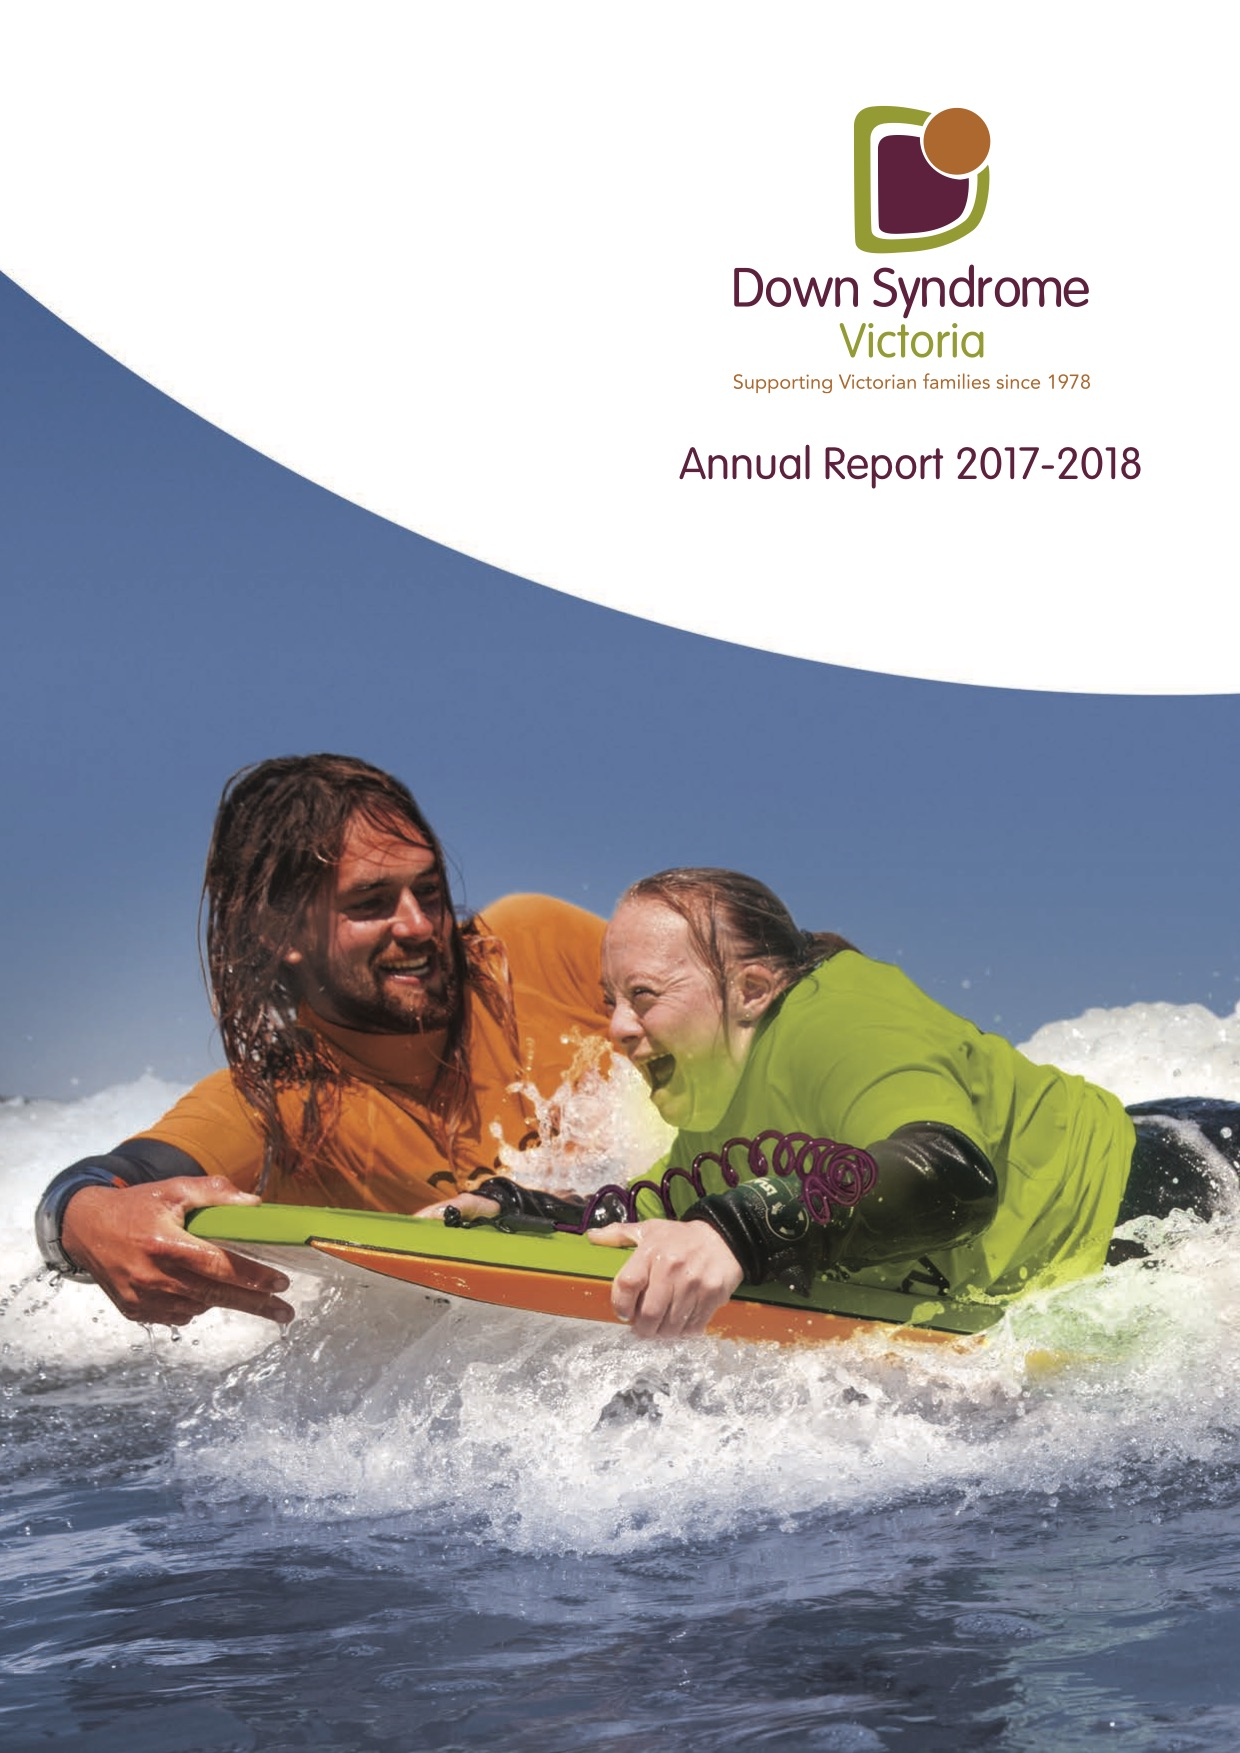 Down Syndrome Victoria Annual Report 2017 to 2018